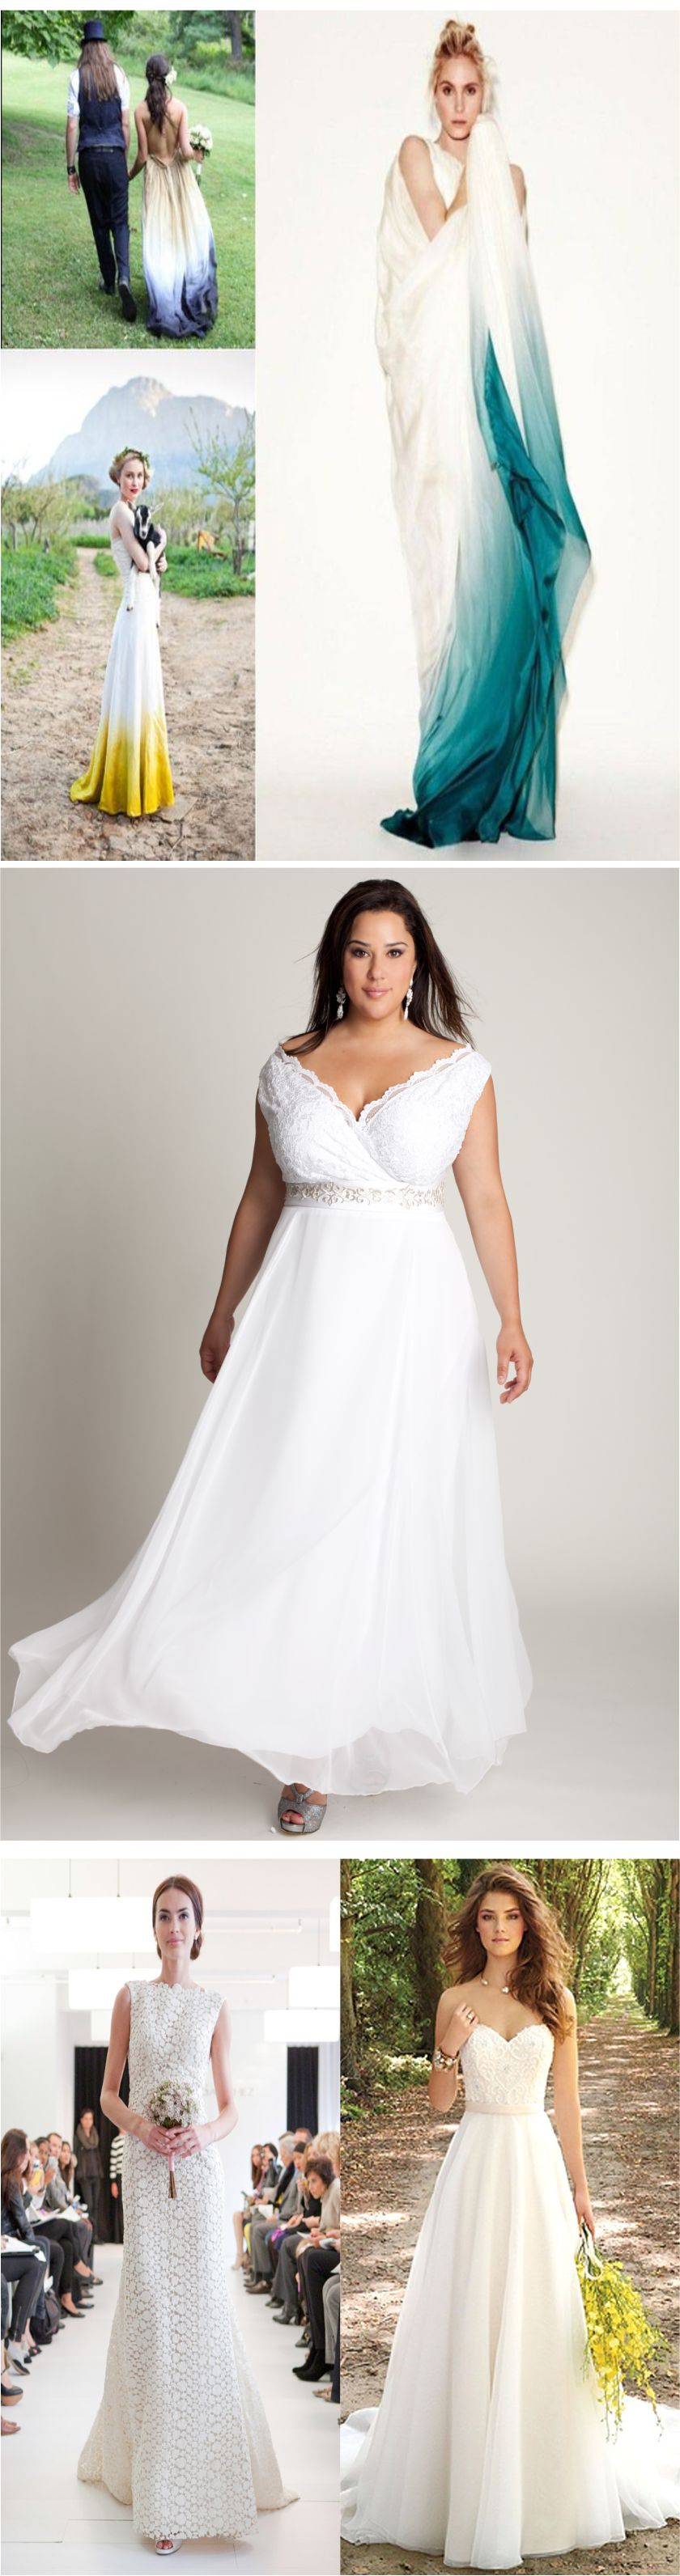 Casual wedding dresses 2018